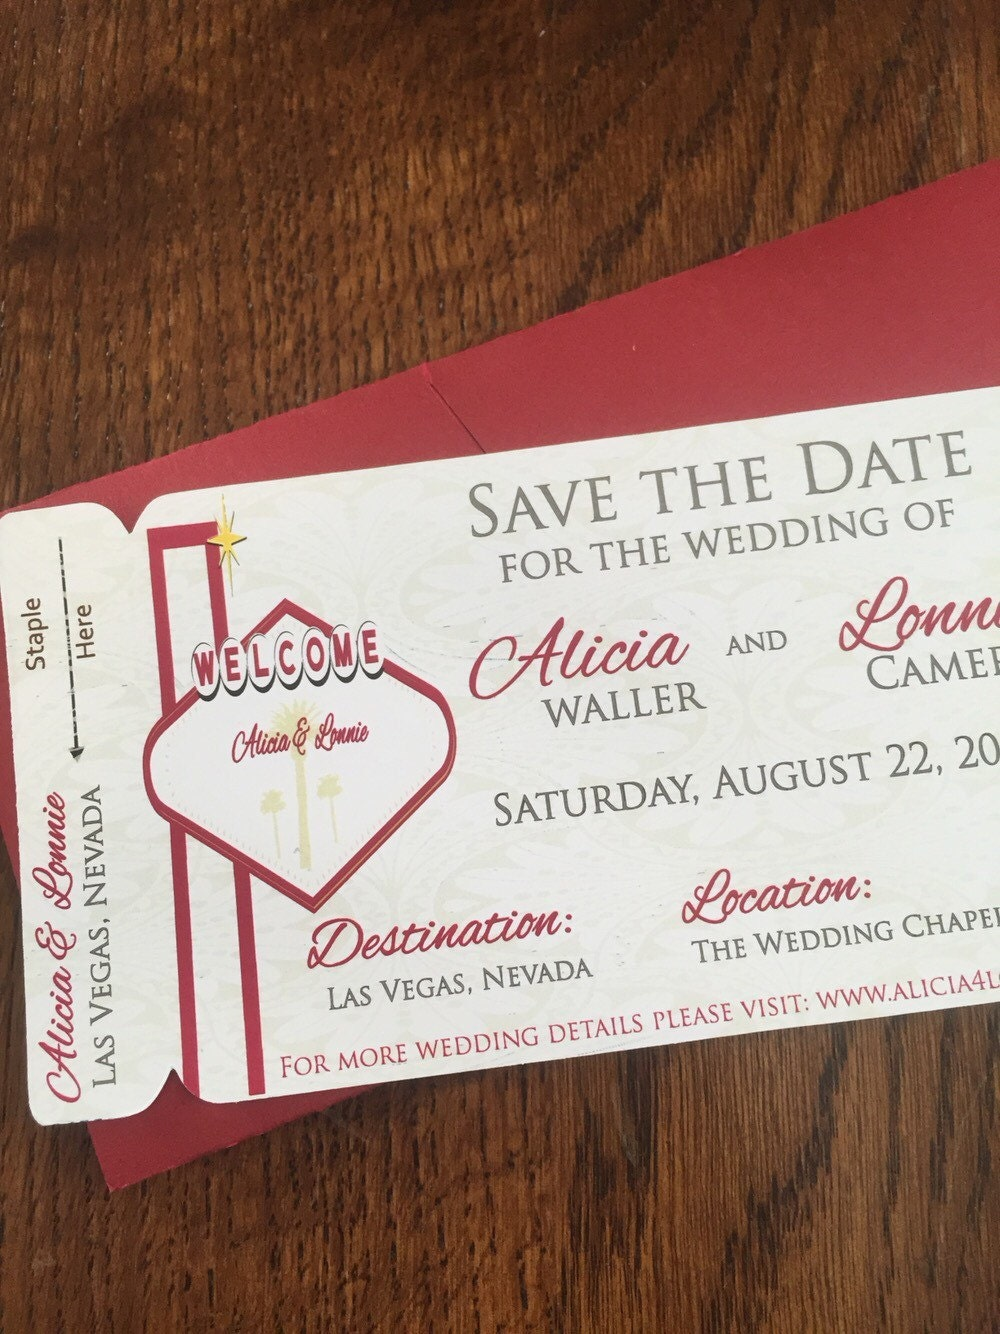 Las vegas save the date. Boarding pass wedding invitation. | Etsy